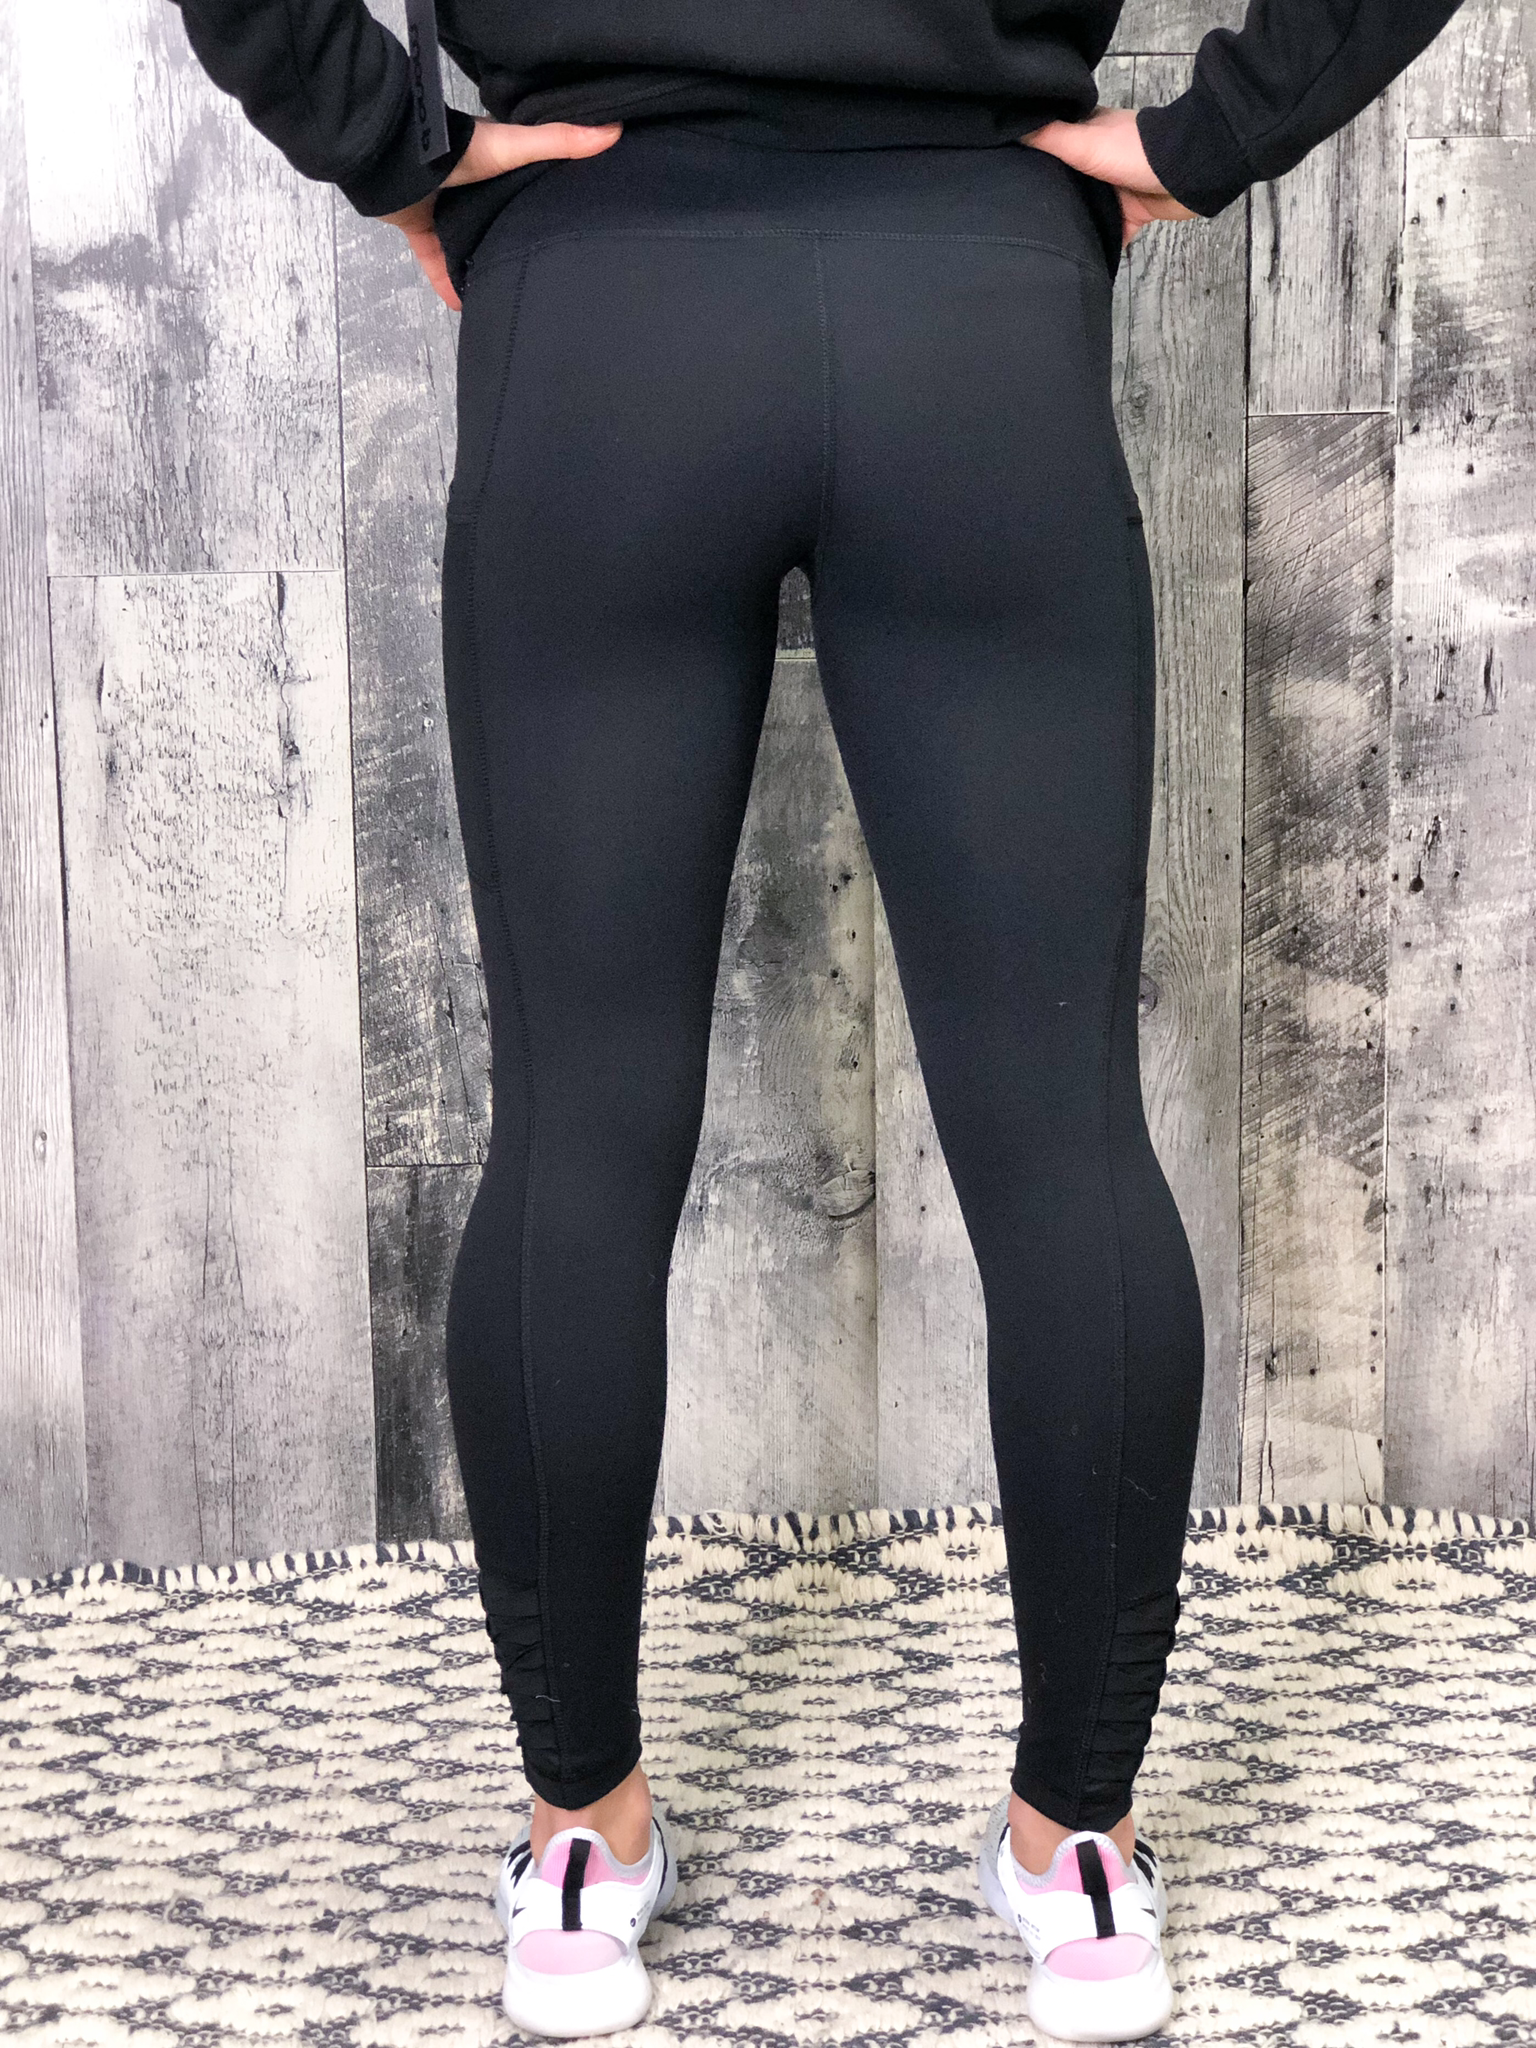 Athletic Legging With Mesh Pocket And Ruffle Ankle Detail